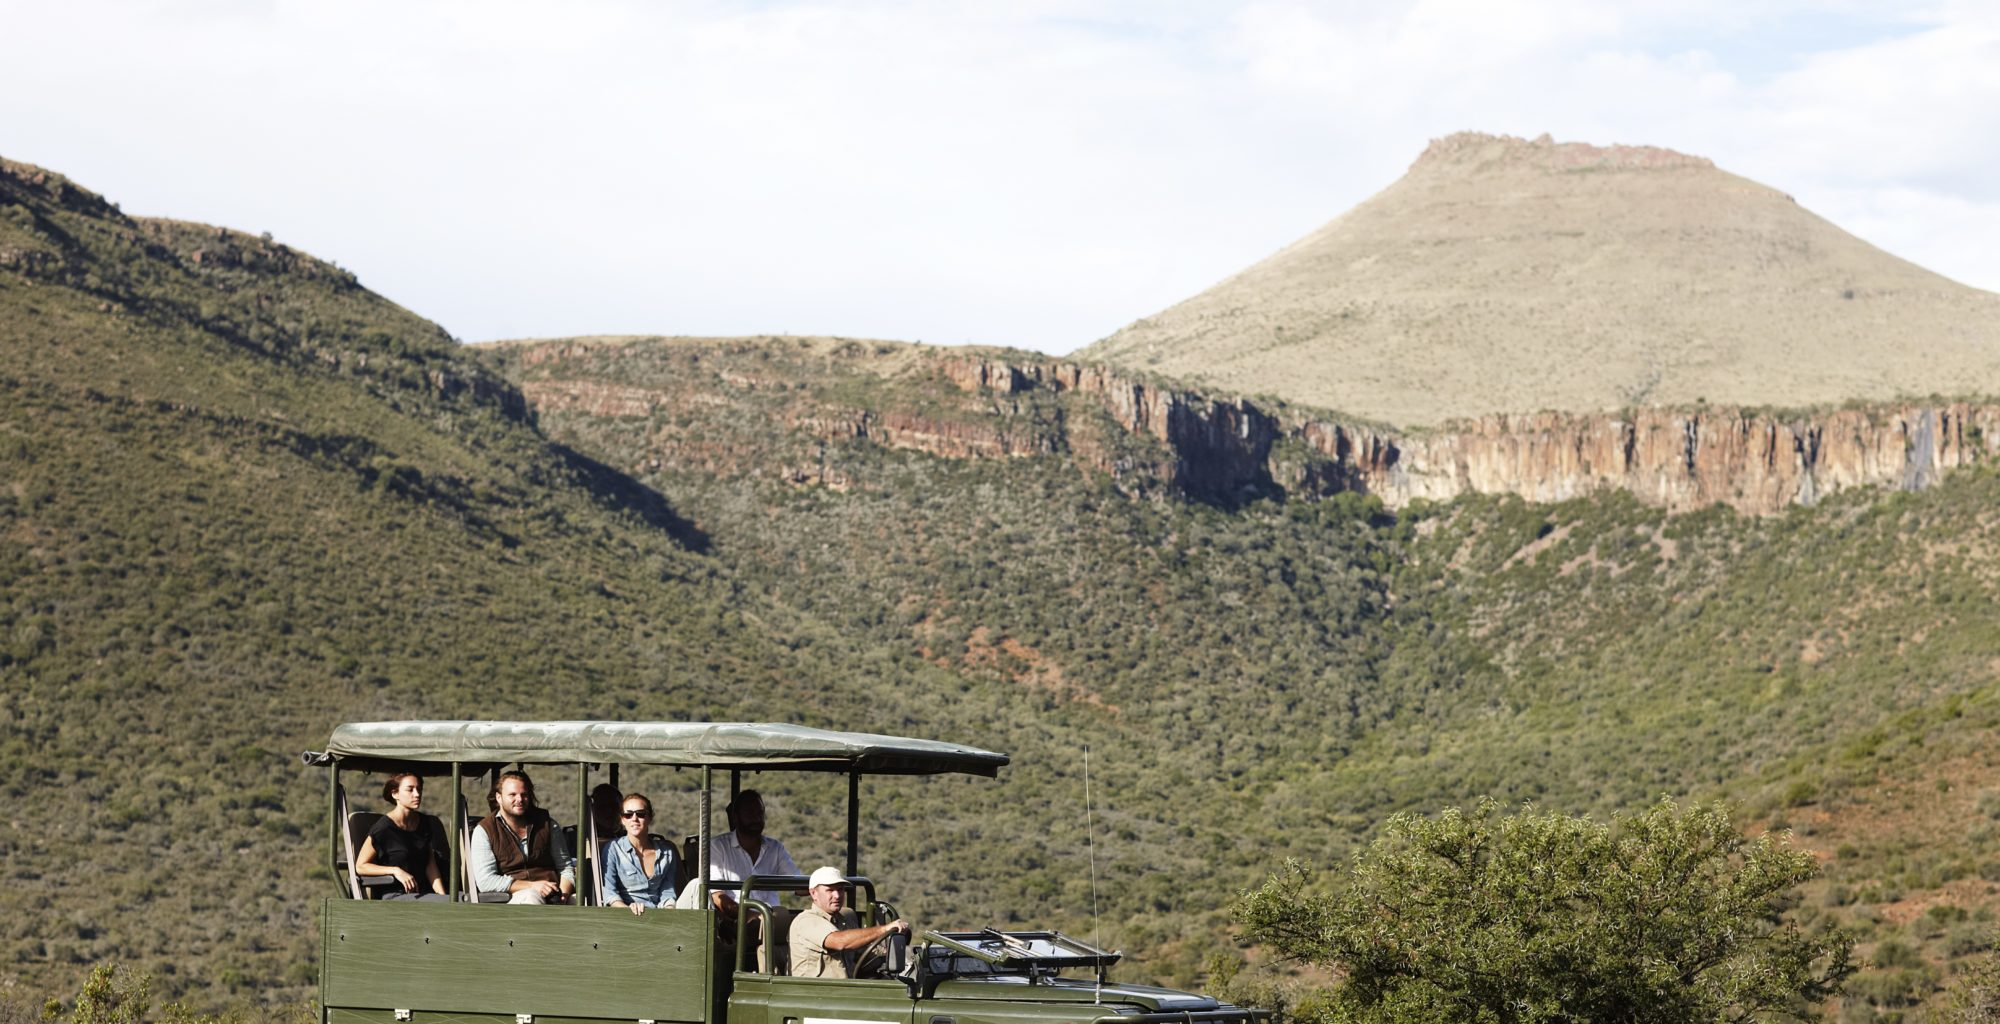 Safari in The Great Karoo